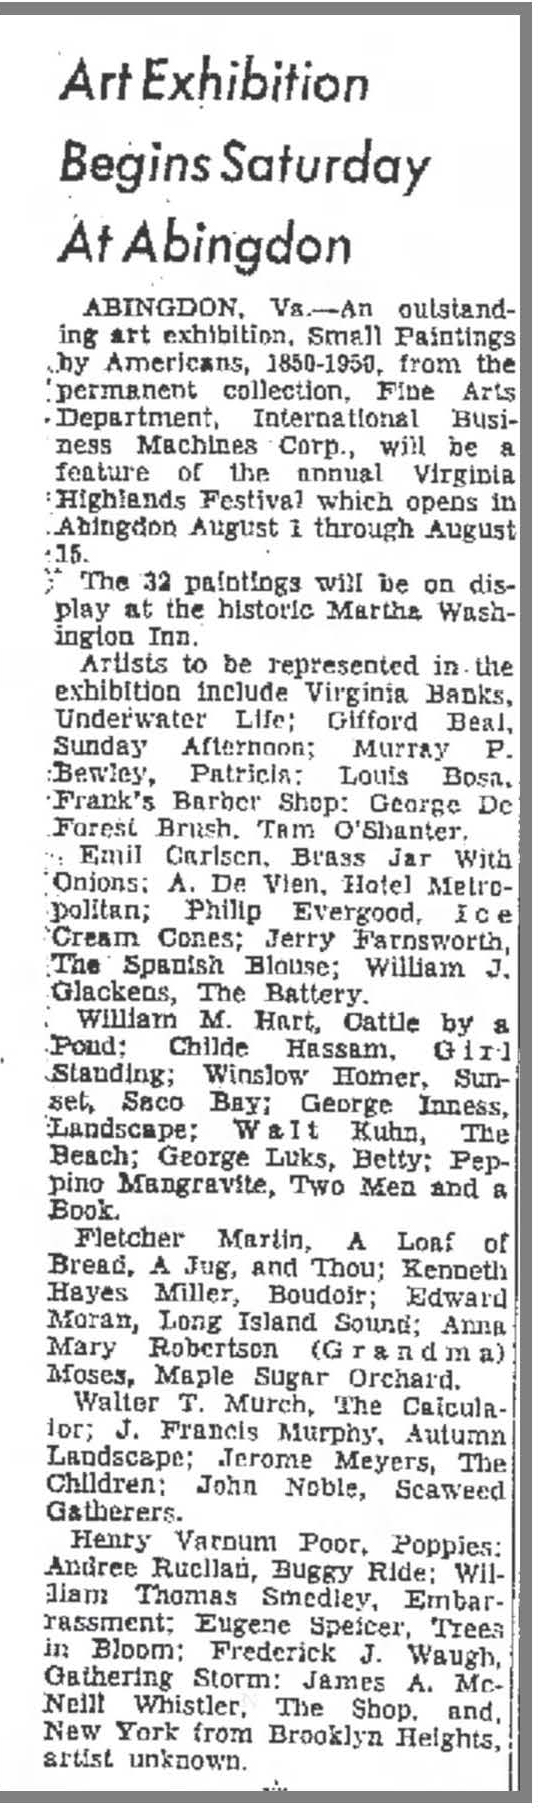 "Kingsport Times, Kingsport, TN, ""Art Exhibition Begins Saturday At Abingdon"", July 31, 1959, Page 2"